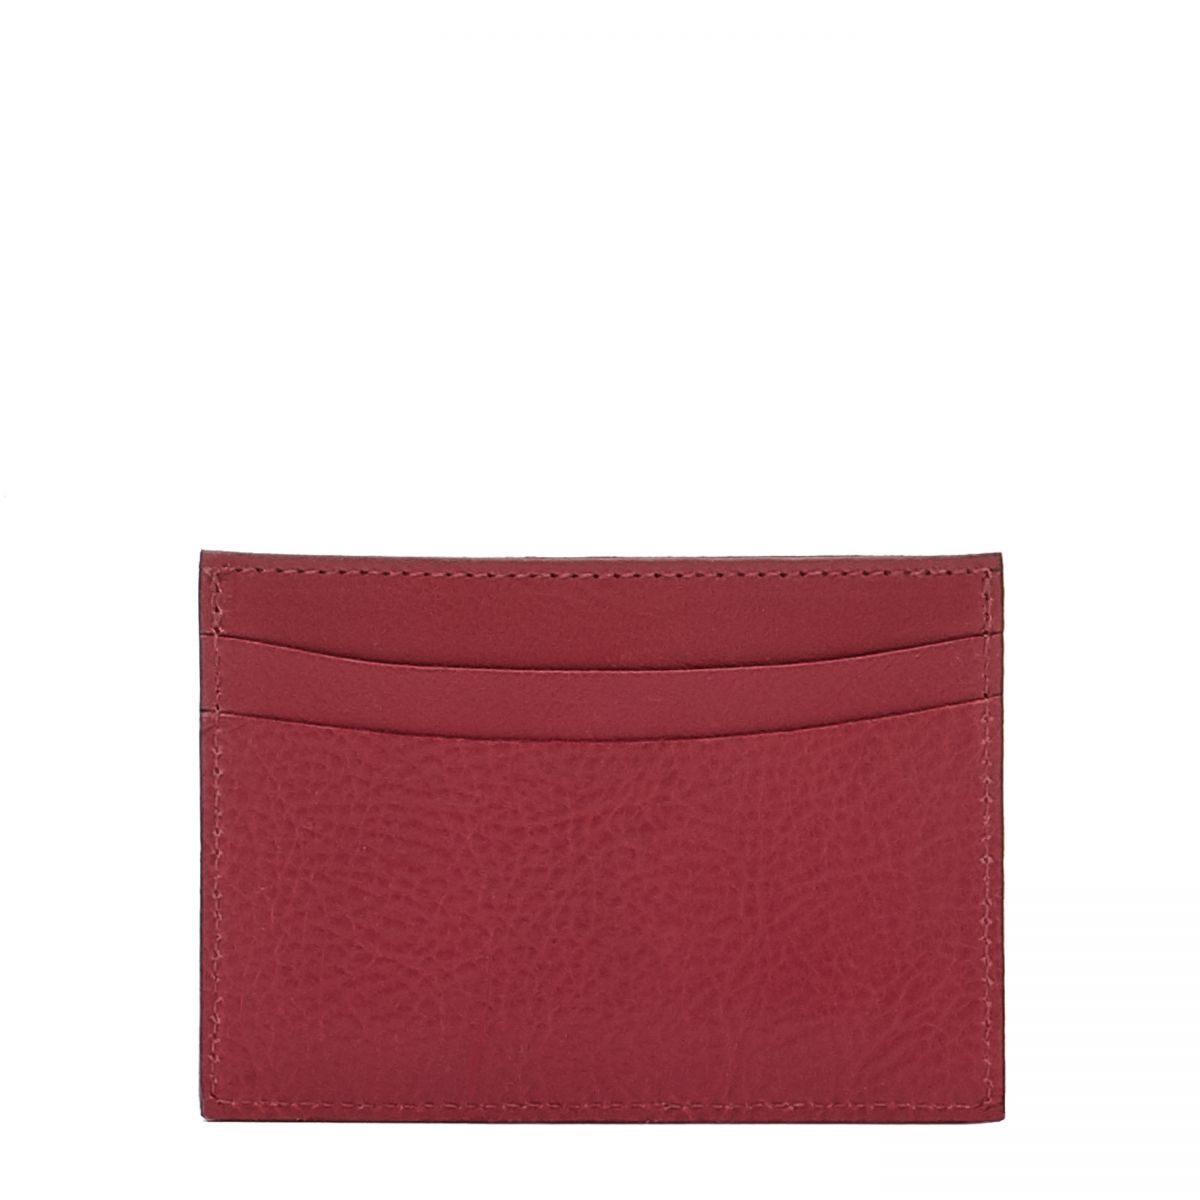 Card Case in Cowhide Leather SCC019 color Sumac | Details